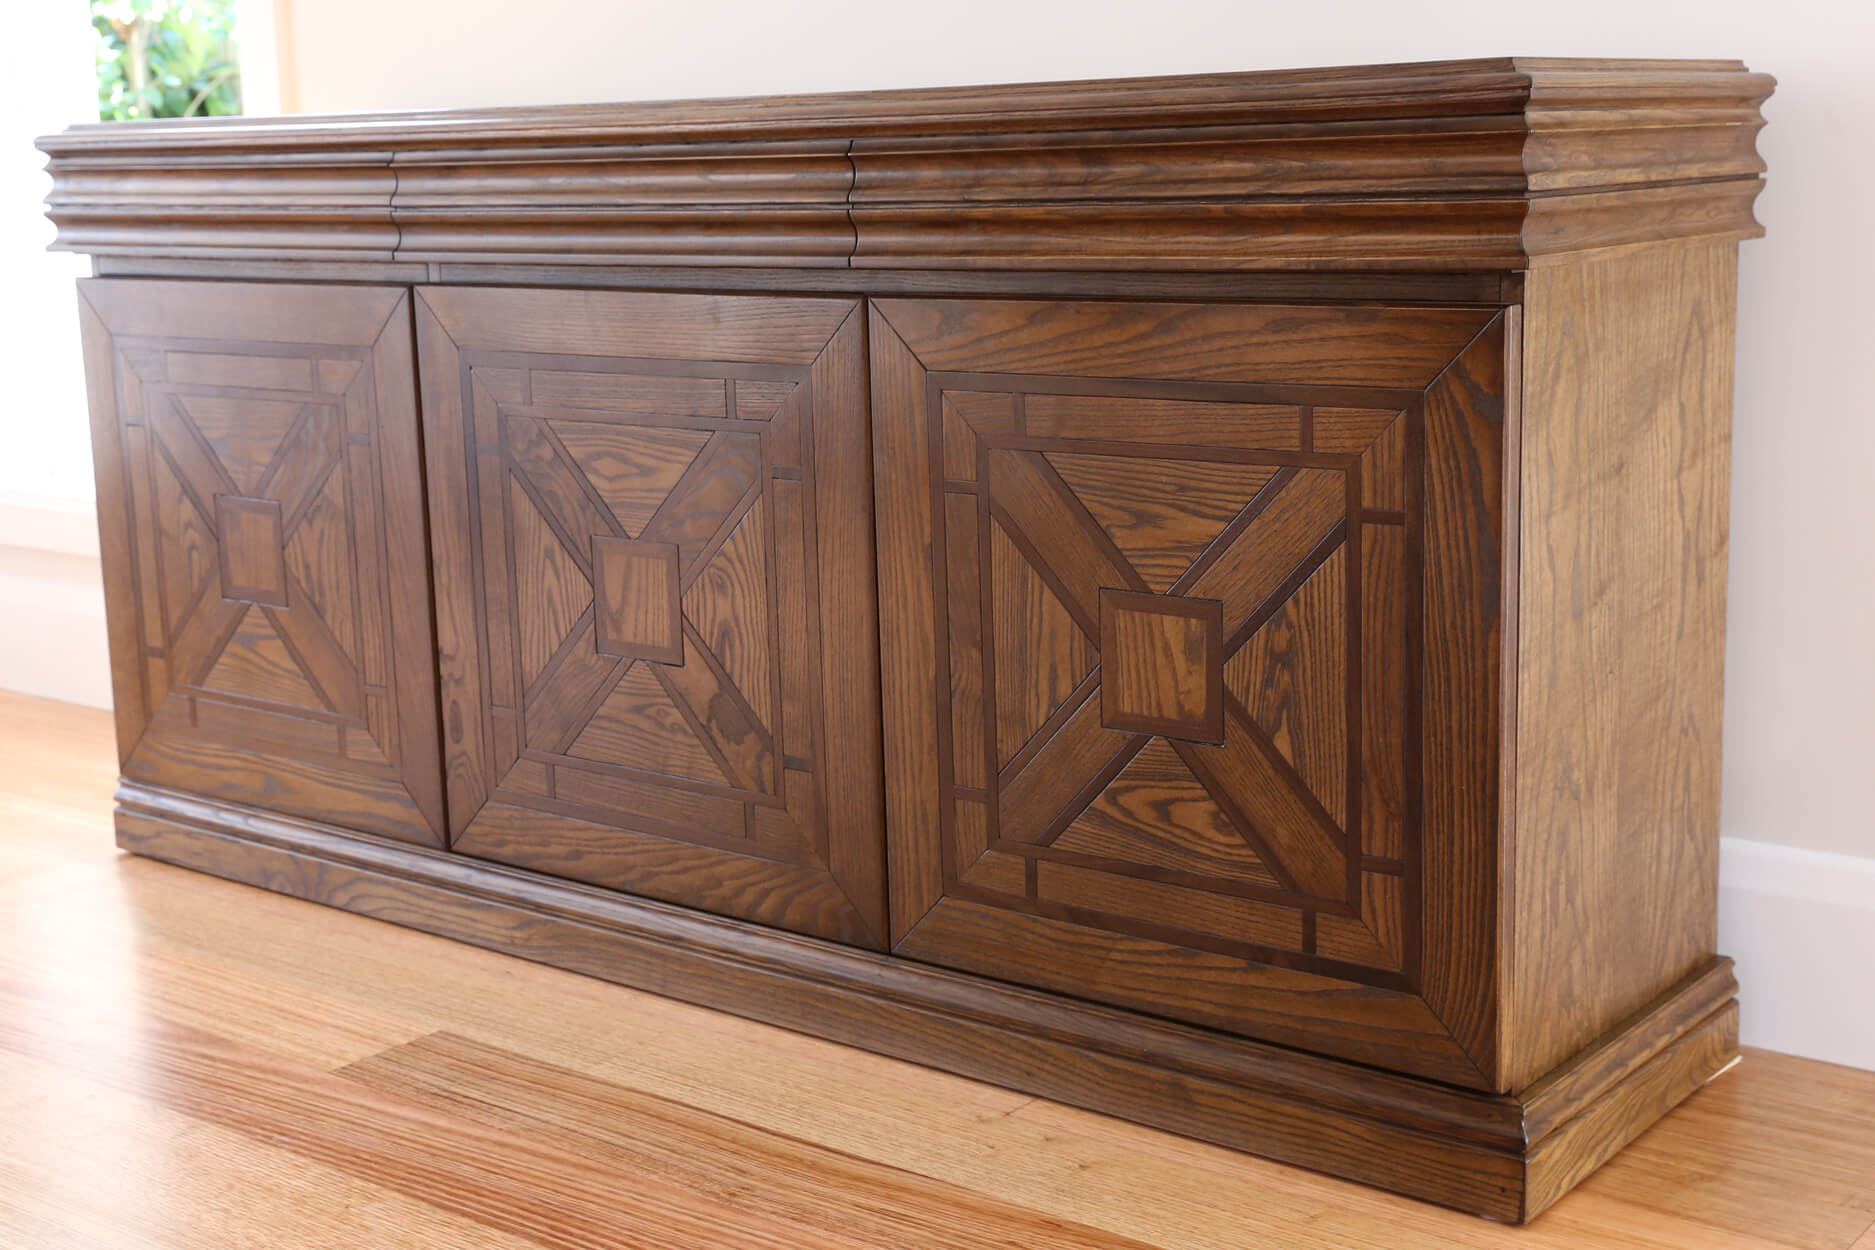 French style Parquetry 3 Door Cabinet Sideboard